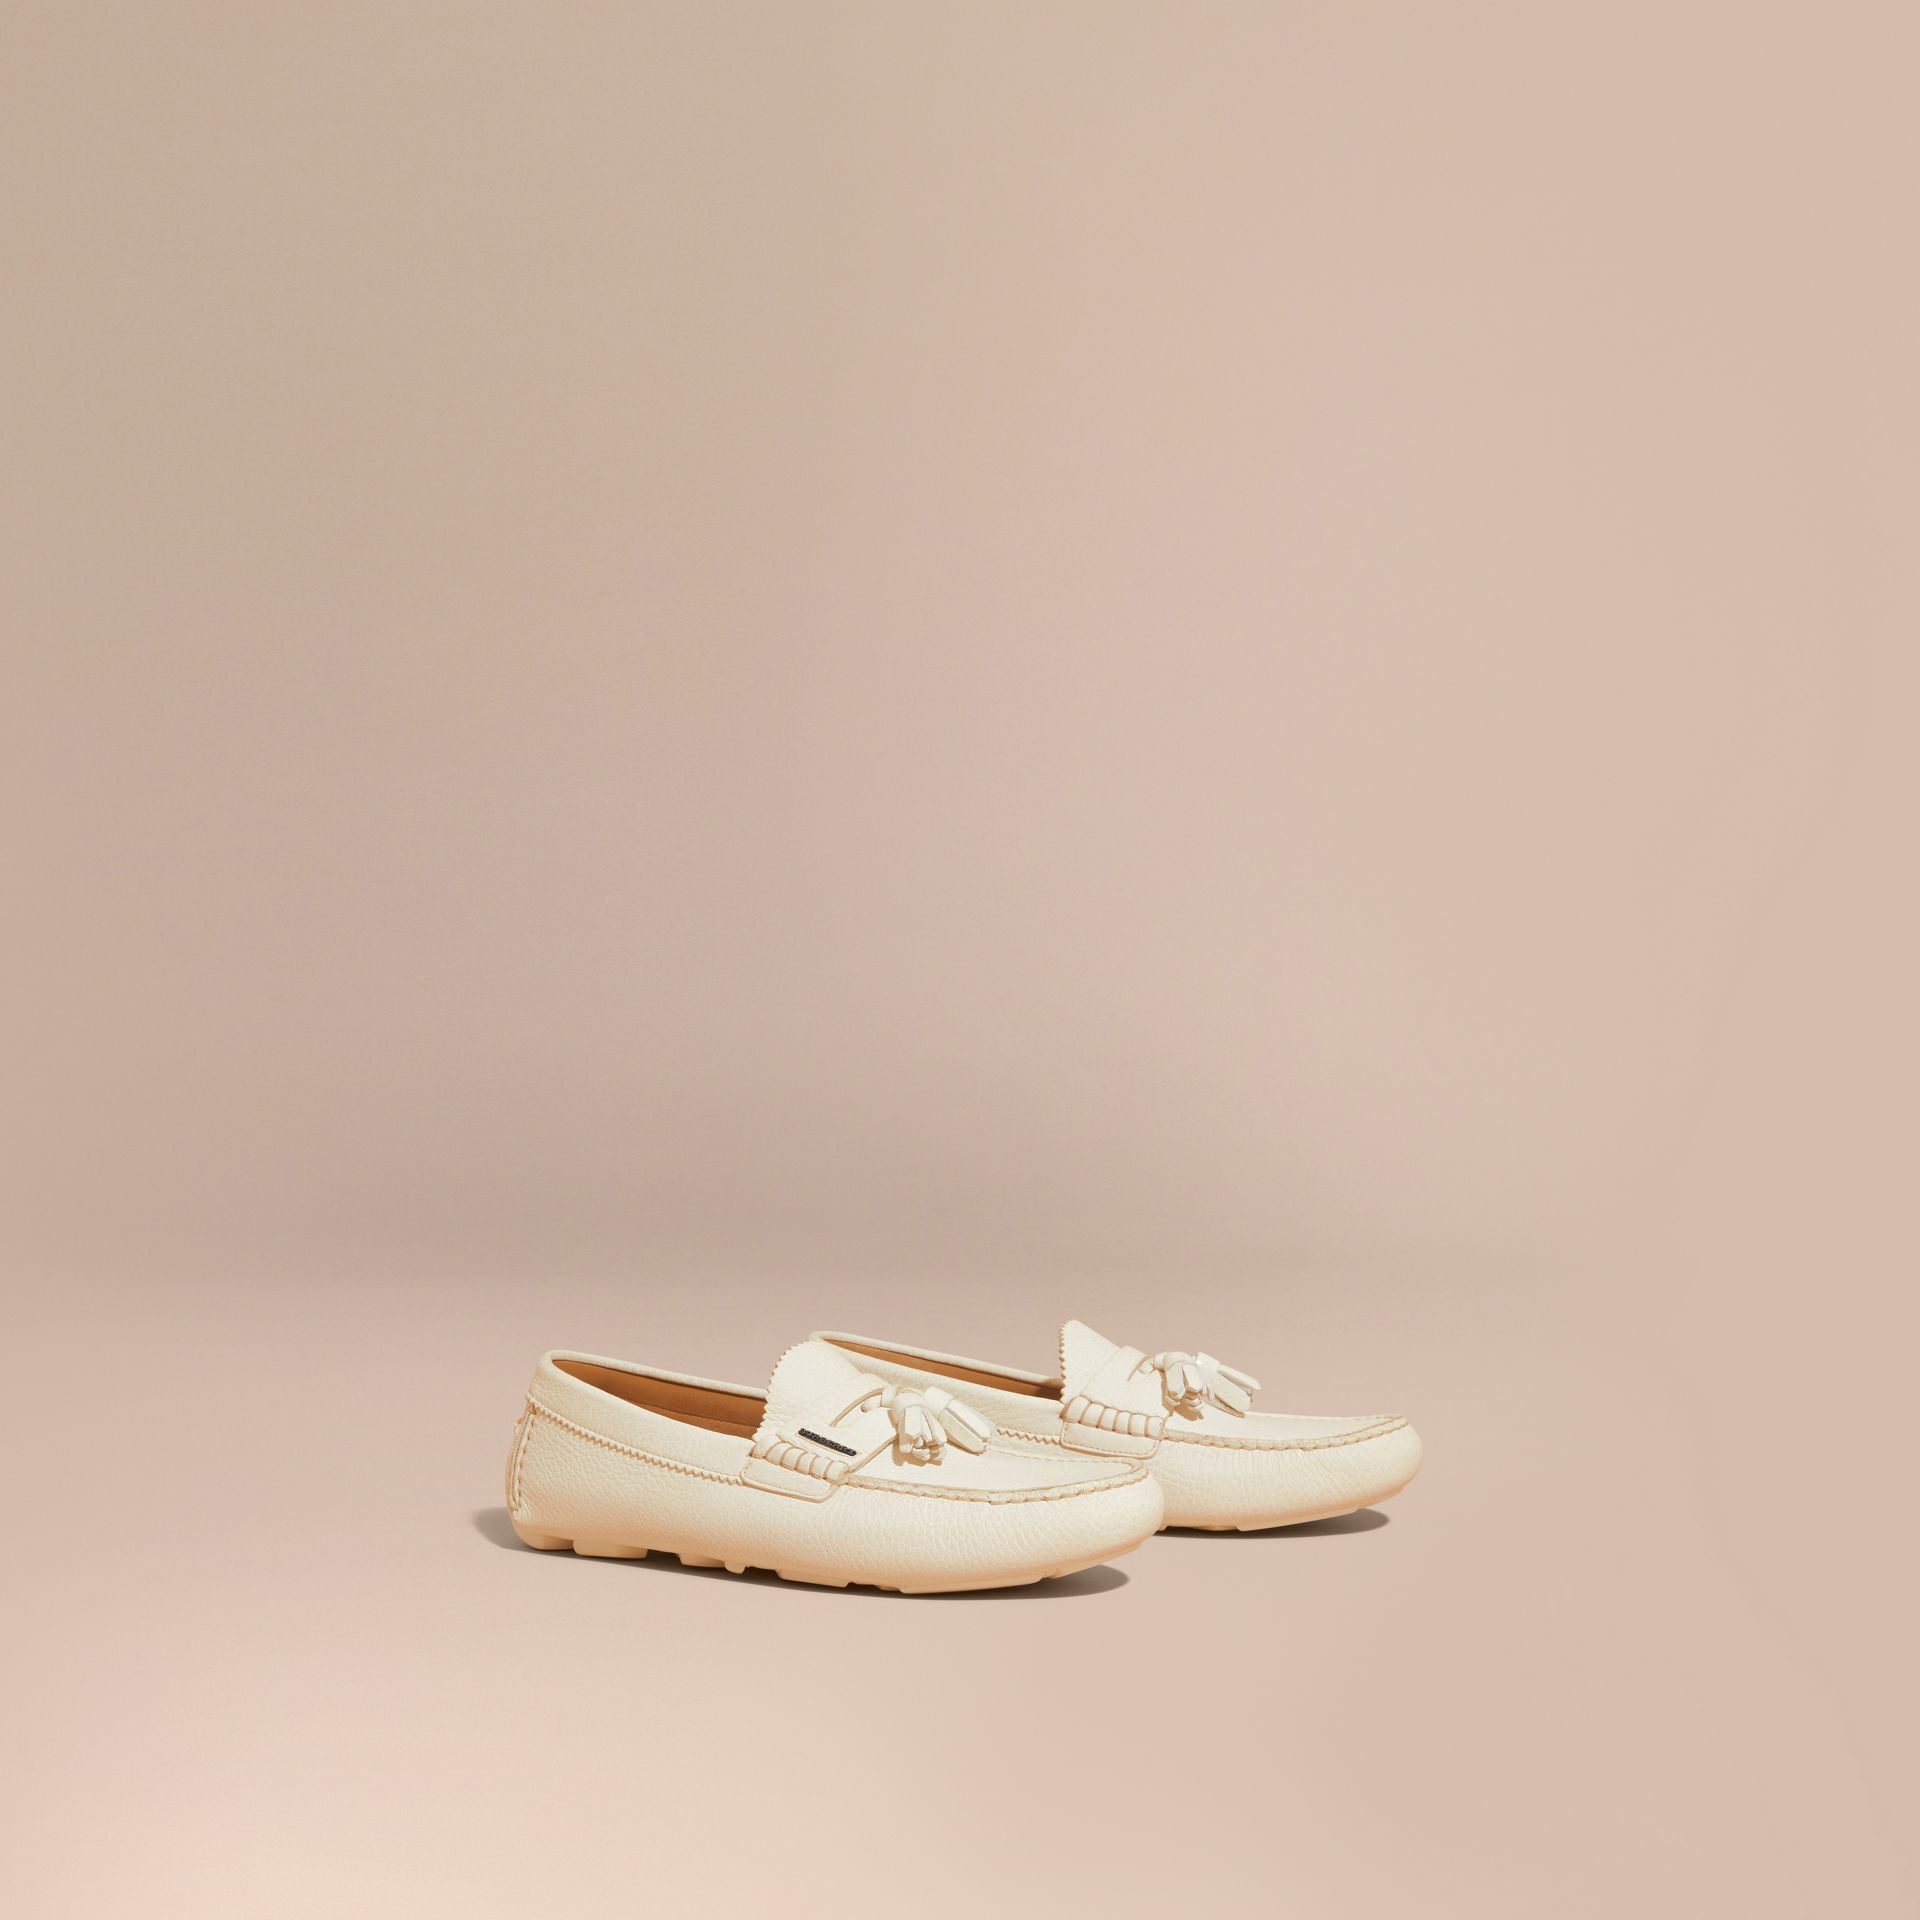 Off white Tasselled Grainy Leather Loafers Off White - gallery image 1